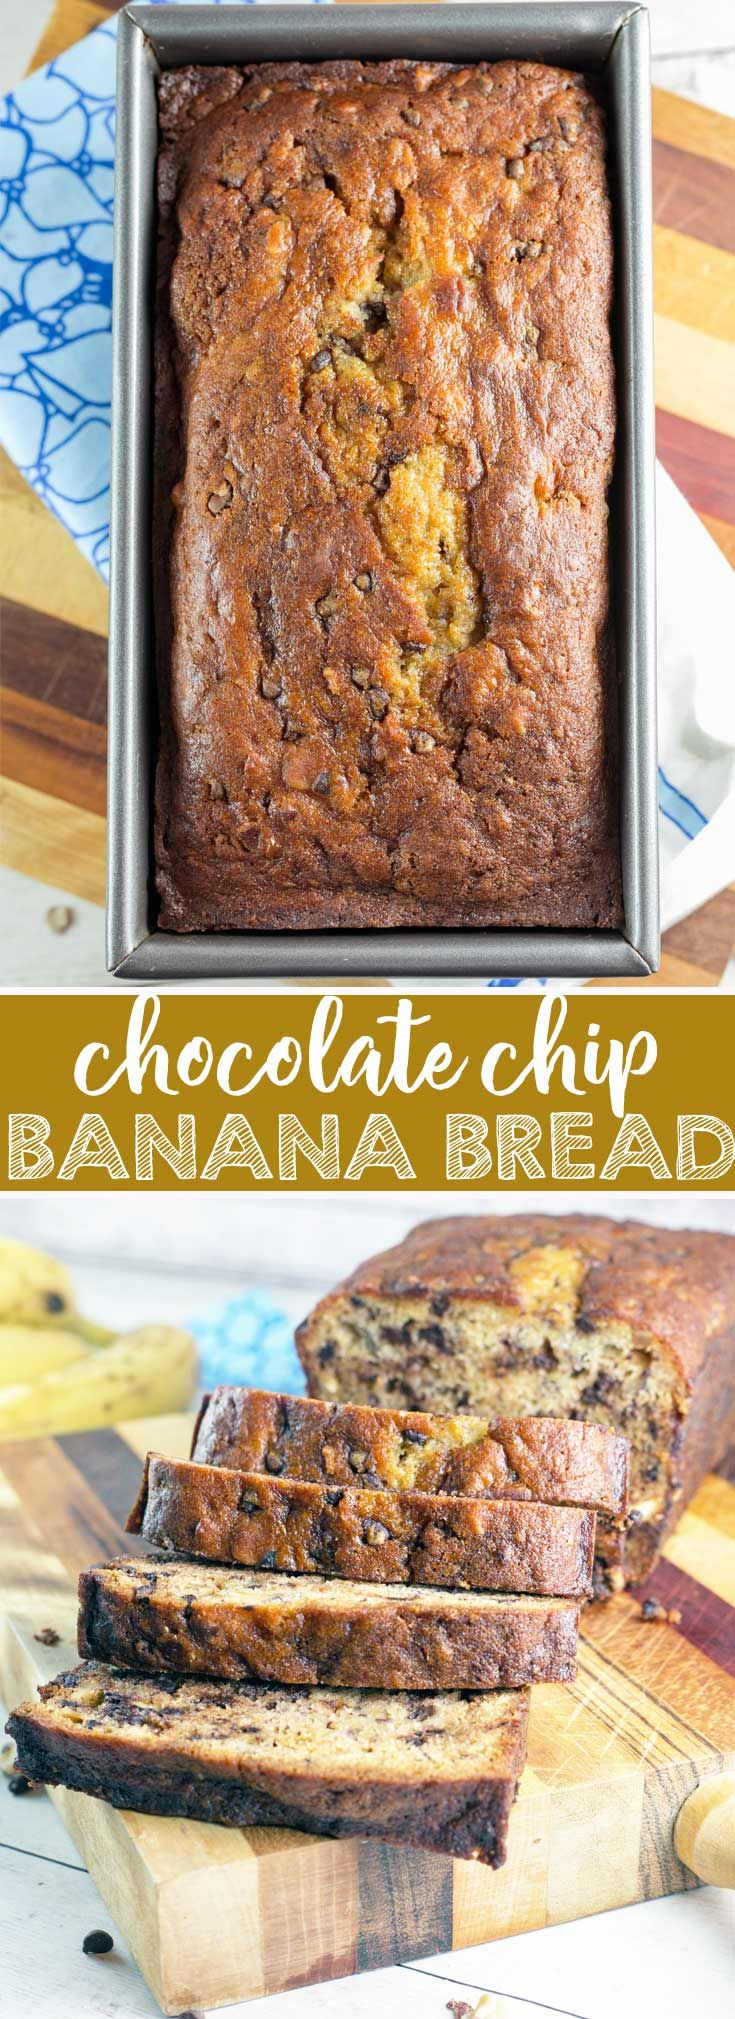 Chocolate Chip Banana Bread: A simple, delicious banana bread, full of chocolate chips and sprinkle of hazelnuts. Ultimate comfort in the form of a quick bread. {Bunsen Burner Bakery} via @bnsnbrnrbakery